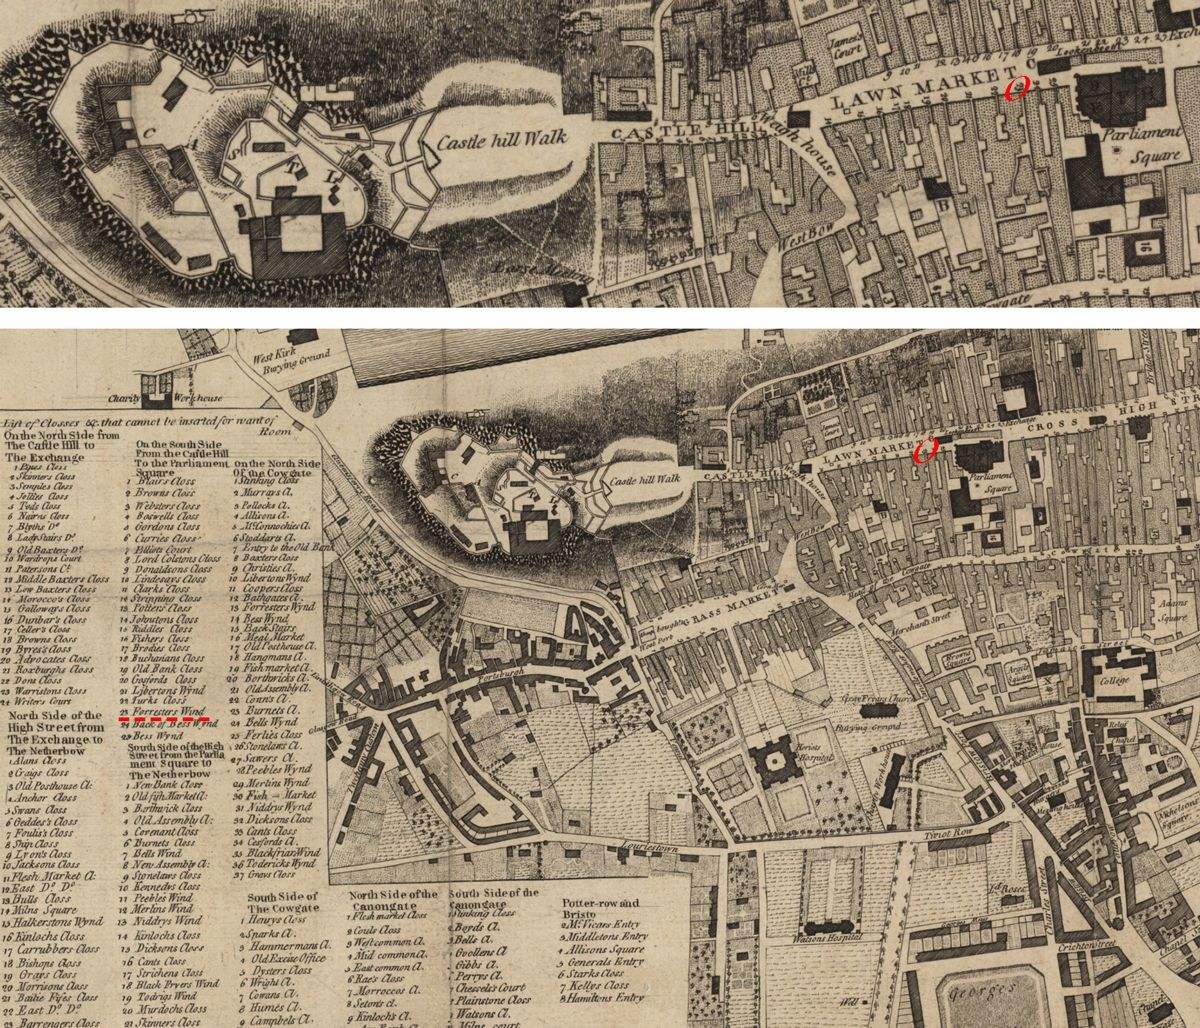 shown on the maps circled in red map of edinburgh 1780 zoomable herehttpmapsnlsukview74400070 roxtonfamilysaga